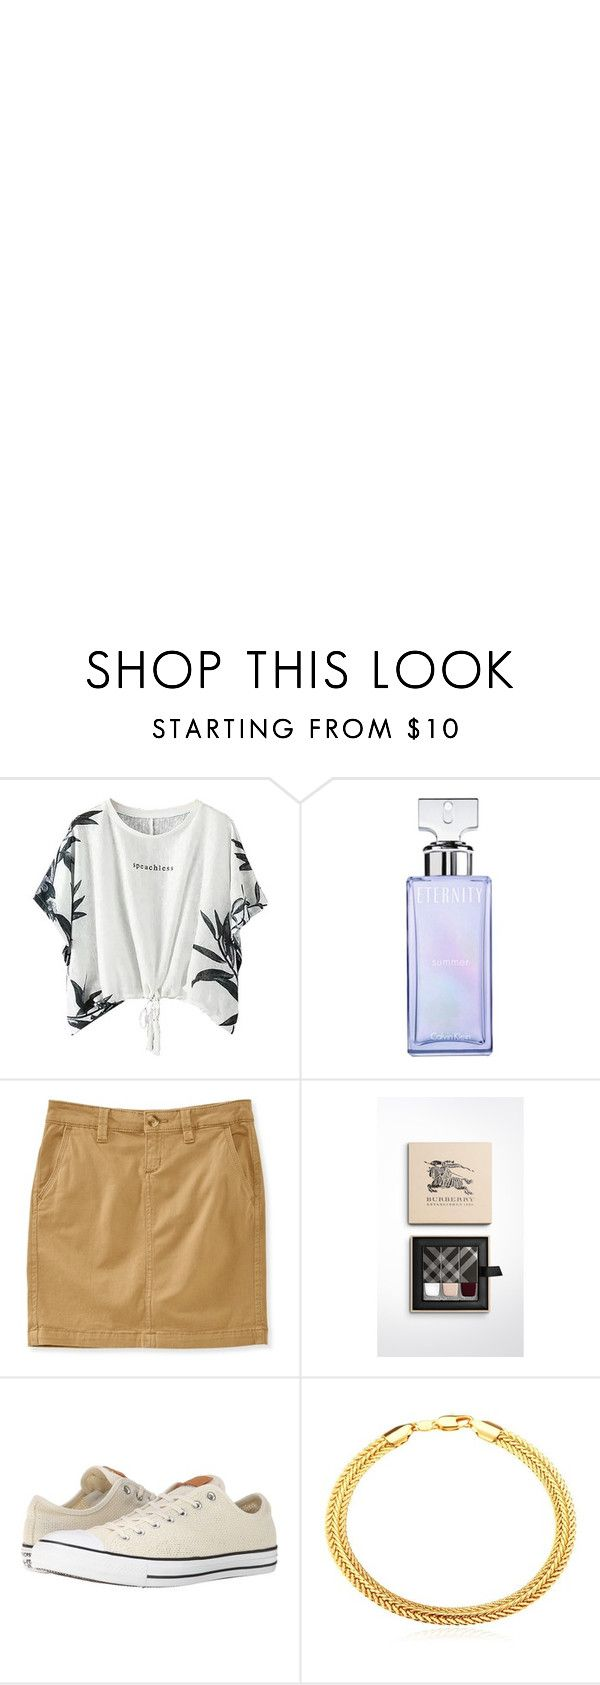 """summer"" by kiajeje ❤ liked on Polyvore featuring Eos, Calvin Klein, Aéropostale, Burberry, Converse, Maison Margiela and summeroutfit"